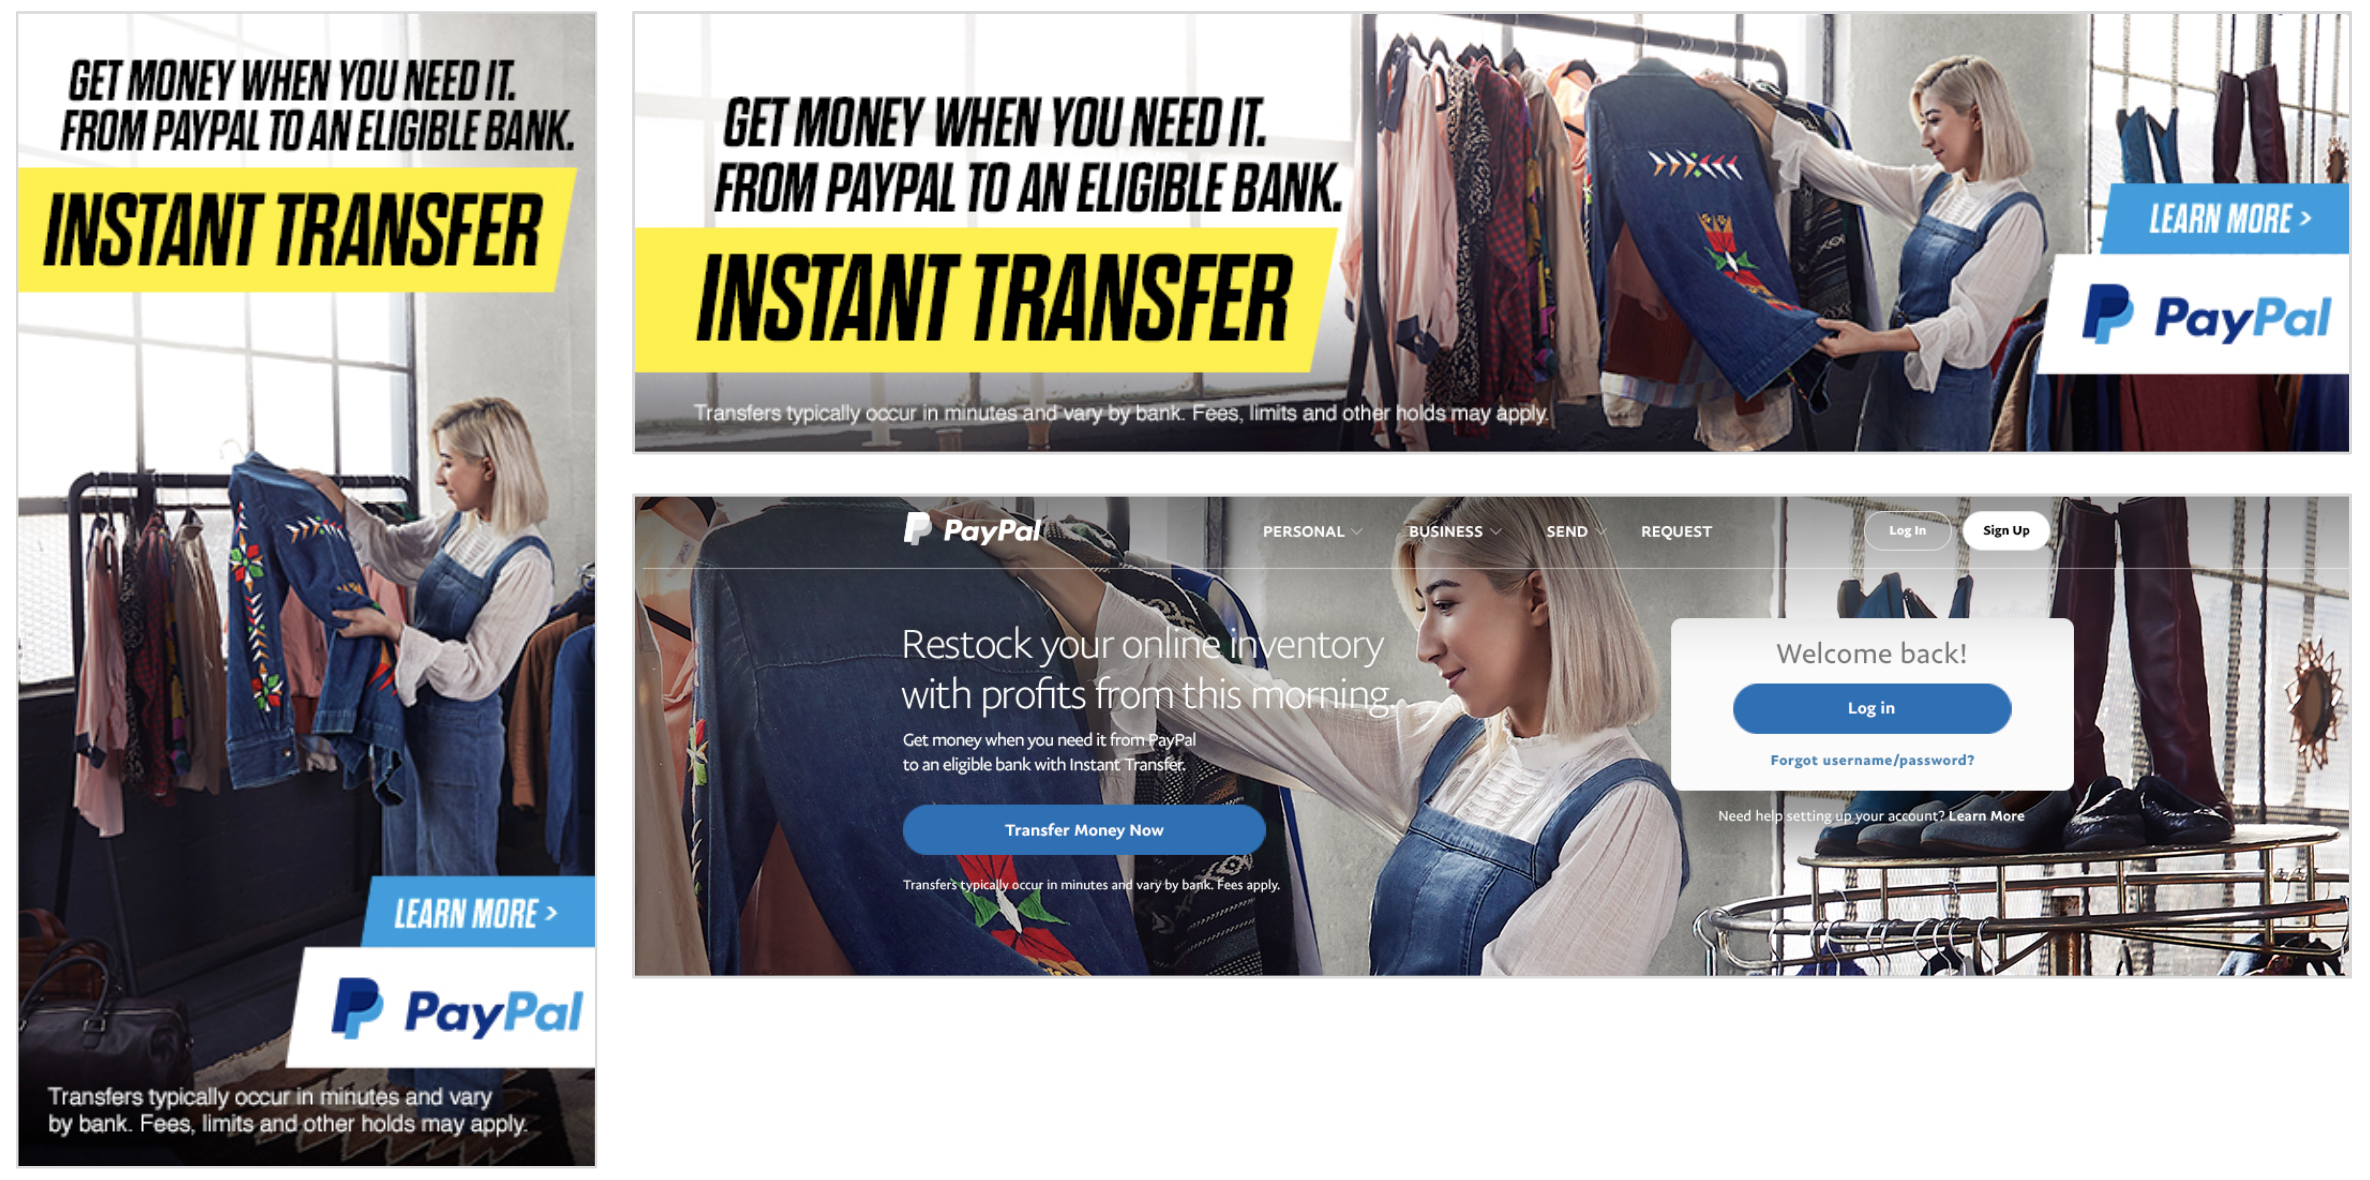 Instant Transfer Campaign for PayPal — Adam Dillon